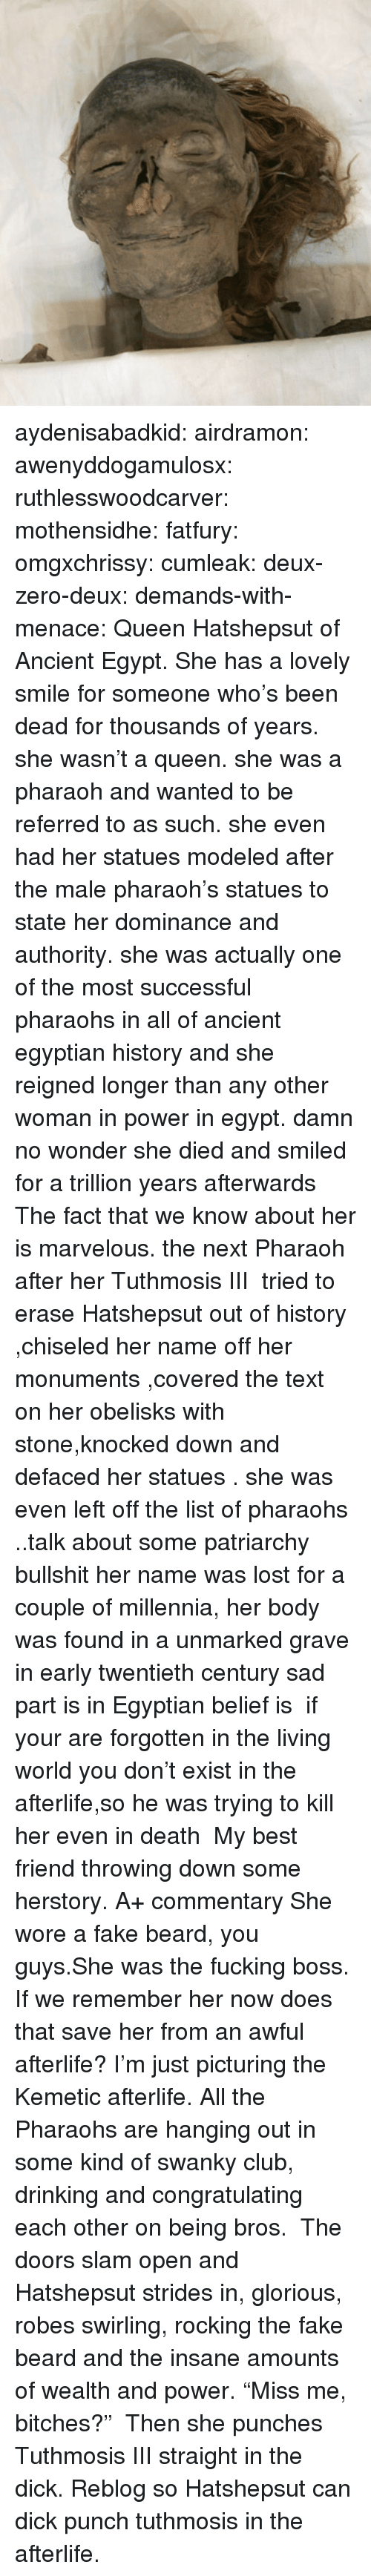 "Beard, Best Friend, and Club: aydenisabadkid: airdramon:  awenyddogamulosx:  ruthlesswoodcarver:  mothensidhe:  fatfury:  omgxchrissy:  cumleak:  deux-zero-deux:  demands-with-menace:  Queen Hatshepsut of Ancient Egypt. She has a lovely smile for someone who's been dead for thousands of years.  she wasn't a queen. she was a pharaoh and wanted to be referred to as such. she even had her statues modeled after the male pharaoh's statues to state her dominance and authority. she was actually one of the most successful pharaohs in all of ancient egyptian history and she reigned longer than any other woman in power in egypt.  damn no wonder she died and smiled for a trillion years afterwards  The fact that we know about her is marvelous. the next Pharaoh after her Tuthmosis III  tried to erase Hatshepsut out of history ,chiseled her name off her monuments ,covered the text on her obelisks with stone,knocked down and defaced her statues . she was even left off the list of pharaohs ..talk about some patriarchy bullshit her name was lost for a couple of millennia, her body was found in a unmarked grave  in early twentieth century sad part is in Egyptian belief is  if your are forgotten in the living world you don't exist in the afterlife,so he was trying to kill her even in death   My best friend throwing down some herstory. A+ commentary  She wore a fake beard, you guys.She was the fucking boss.  If we remember her now does that save her from an awful afterlife?  I'm just picturing the Kemetic afterlife. All the Pharaohs are hanging out in some kind of swanky club, drinking and congratulating each other on being bros.  The doors slam open and Hatshepsut strides in, glorious, robes swirling, rocking the fake beard and the insane amounts of wealth and power. ""Miss me, bitches?""   Then she punches Tuthmosis III straight in the dick.   Reblog so Hatshepsut can dick punch tuthmosis in the afterlife."